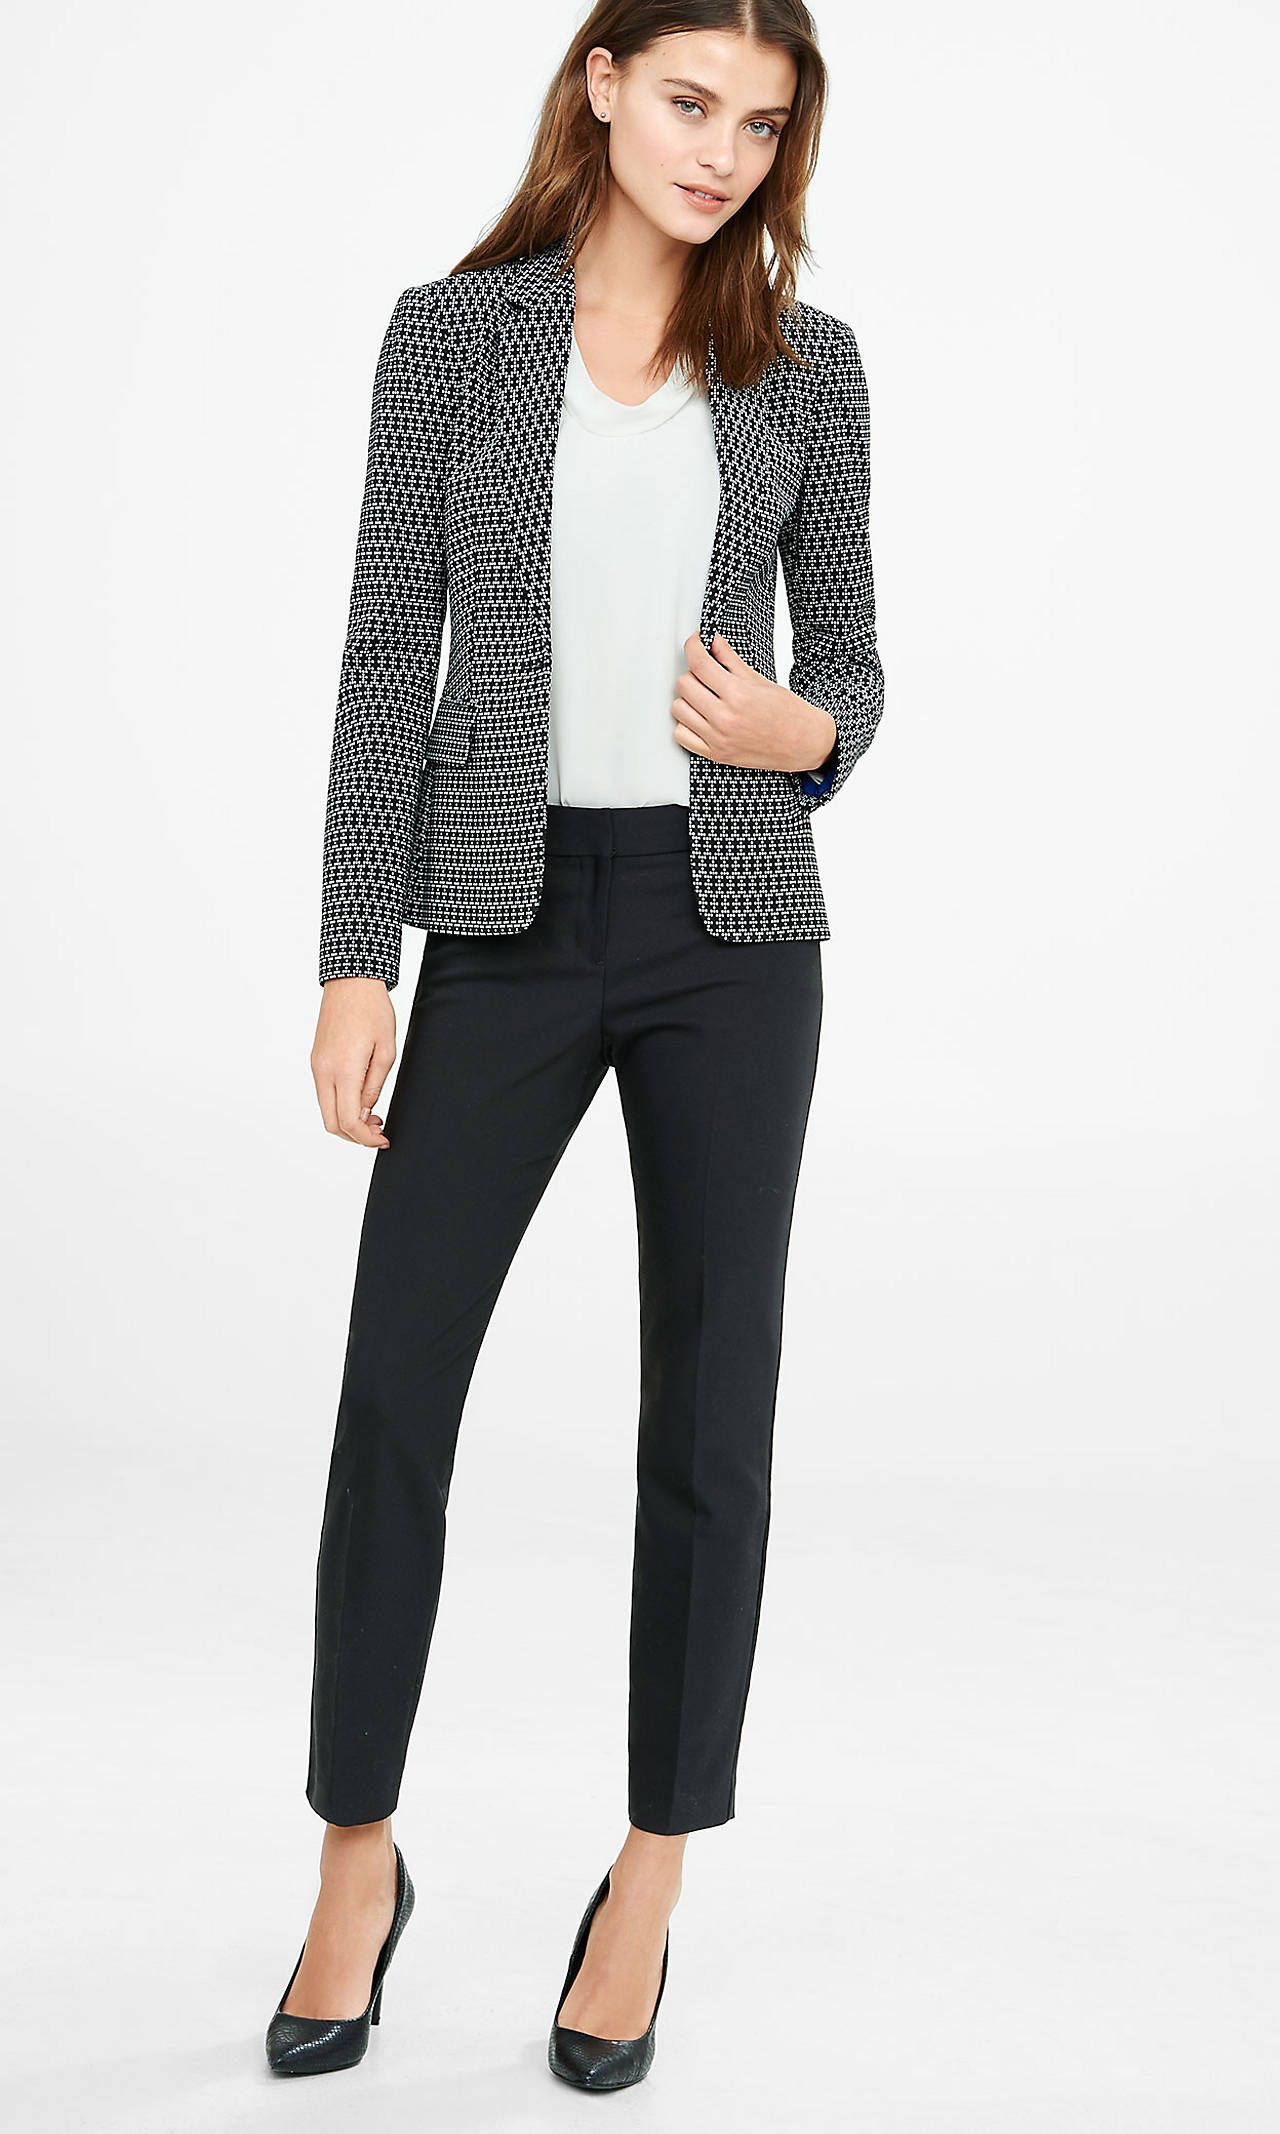 Ankle Pants With Suit